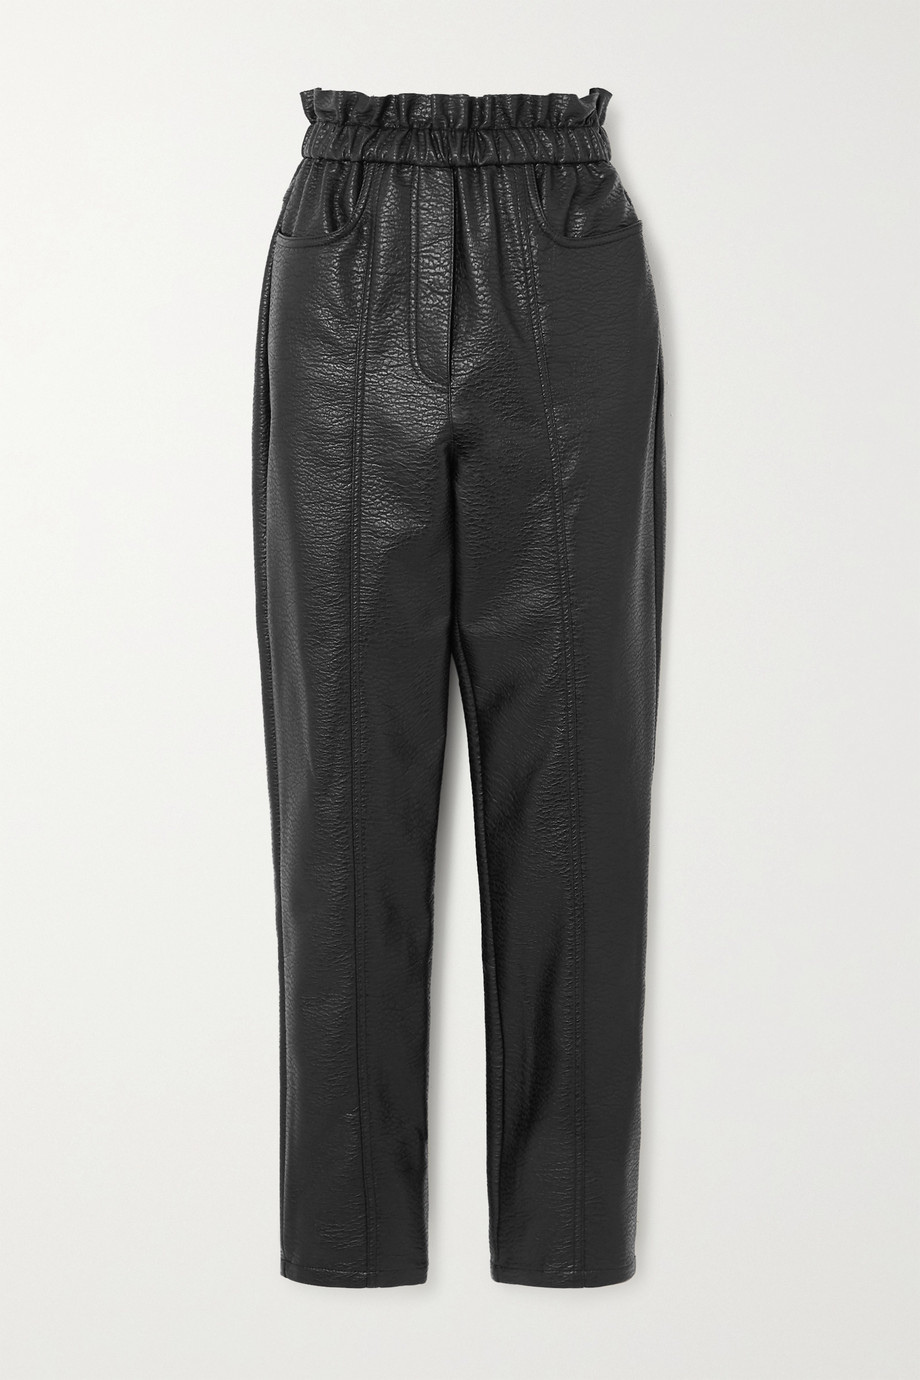 Philosophy di Lorenzo Serafini Faux textured-leather tapered pants